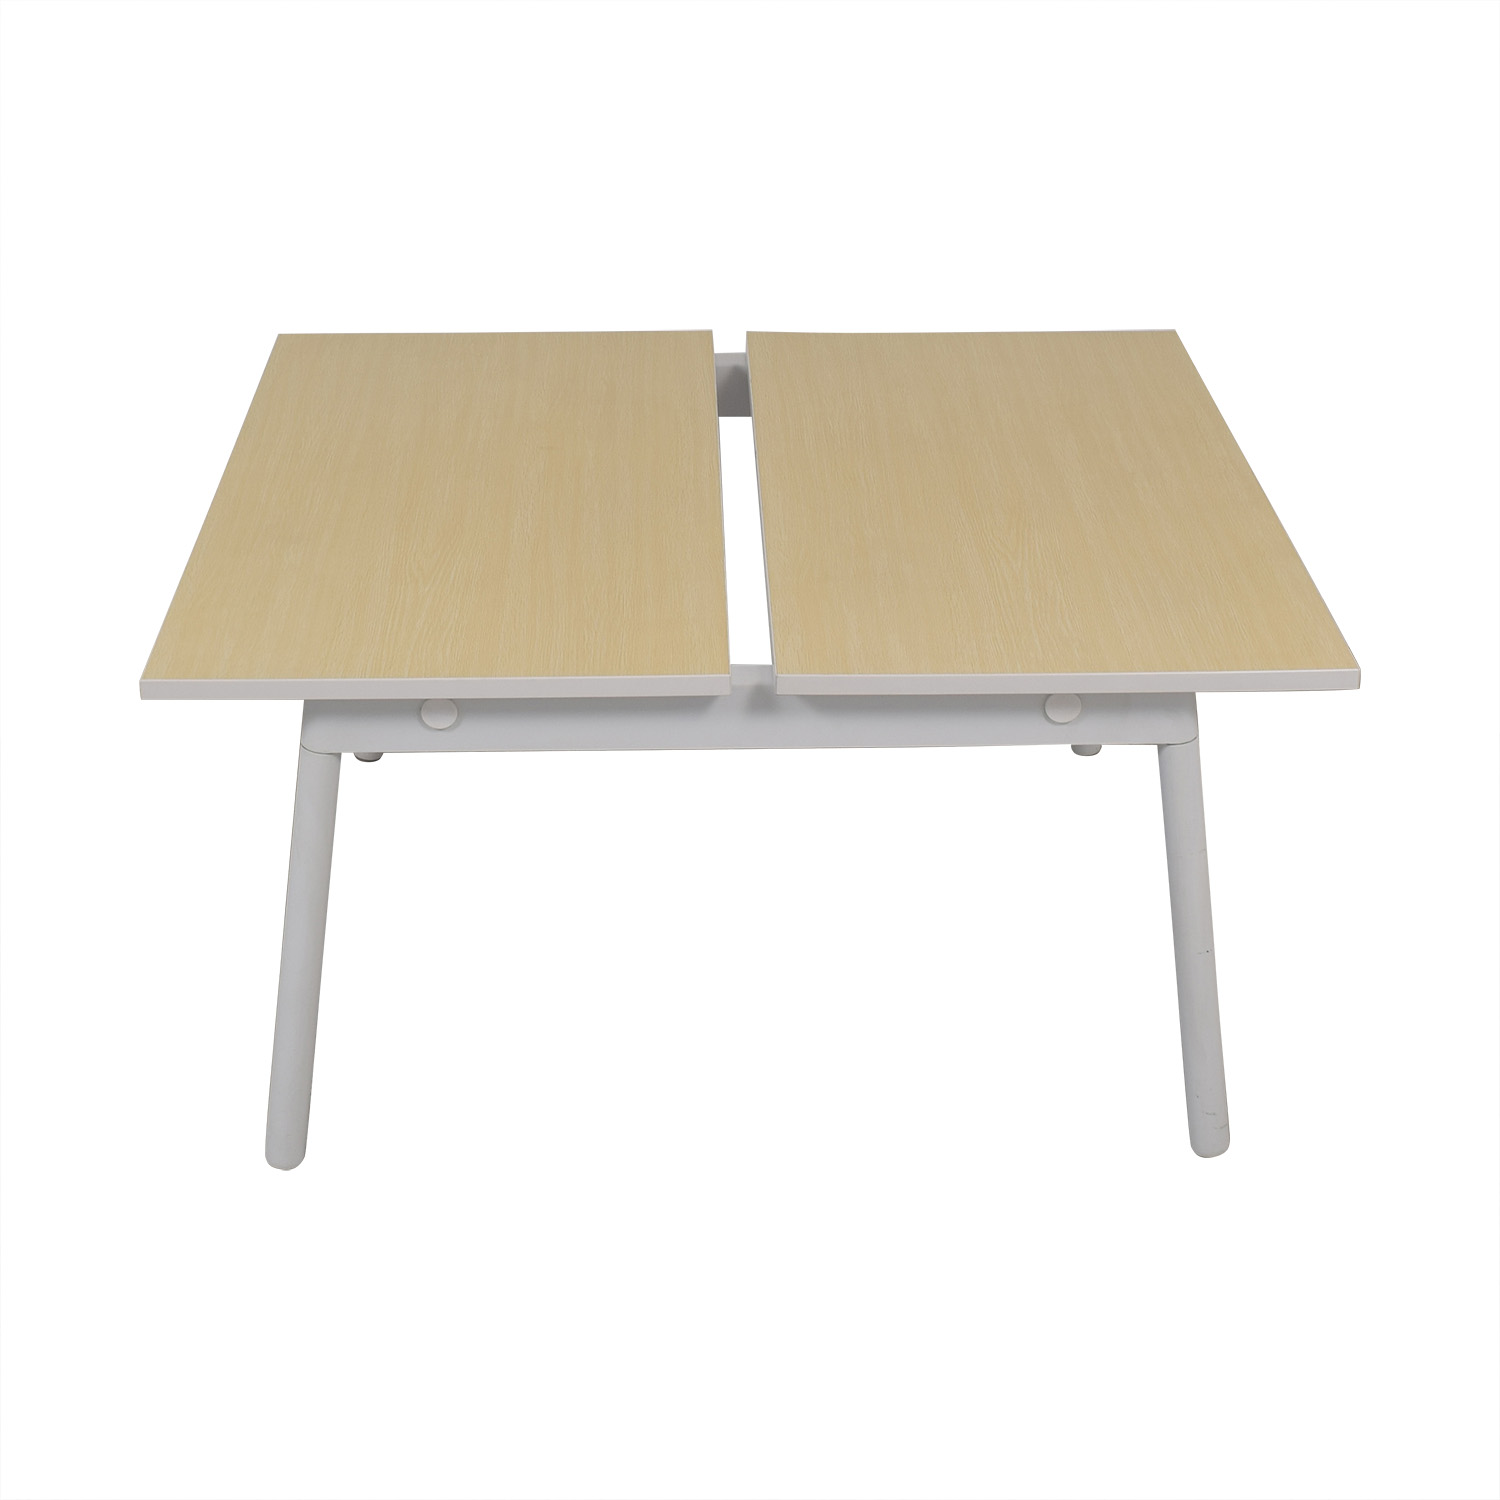 Poppin Series A Double Desk sale